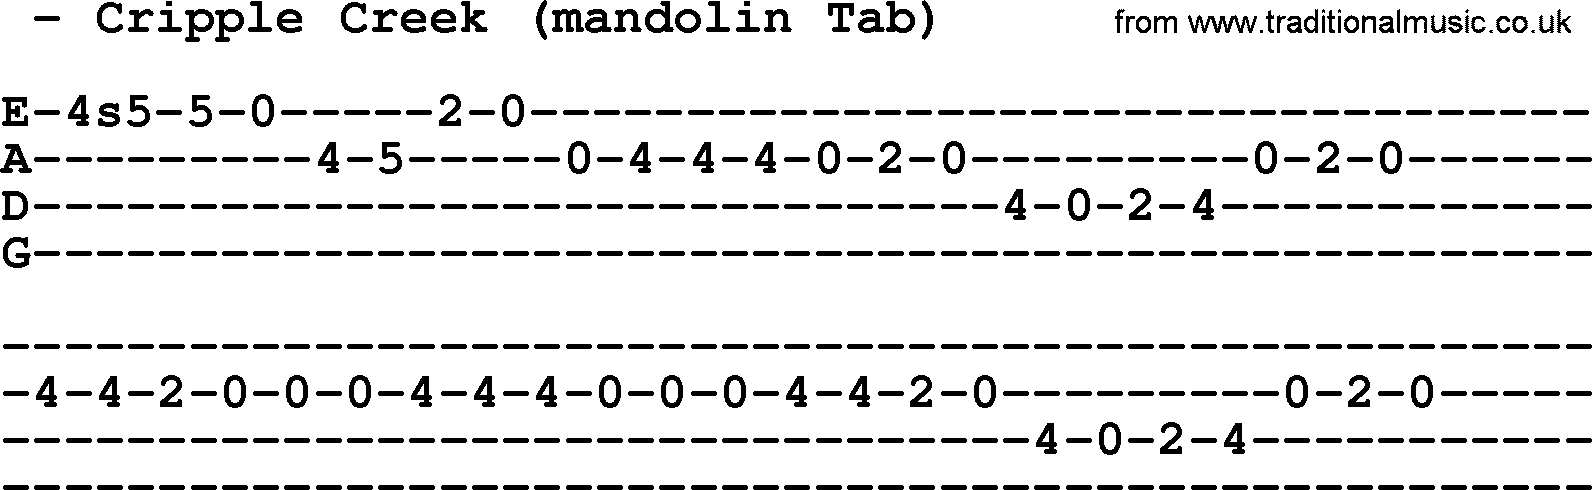 Cripple Creek(Mandolin Tab) - Bluegrass lyrics with chords